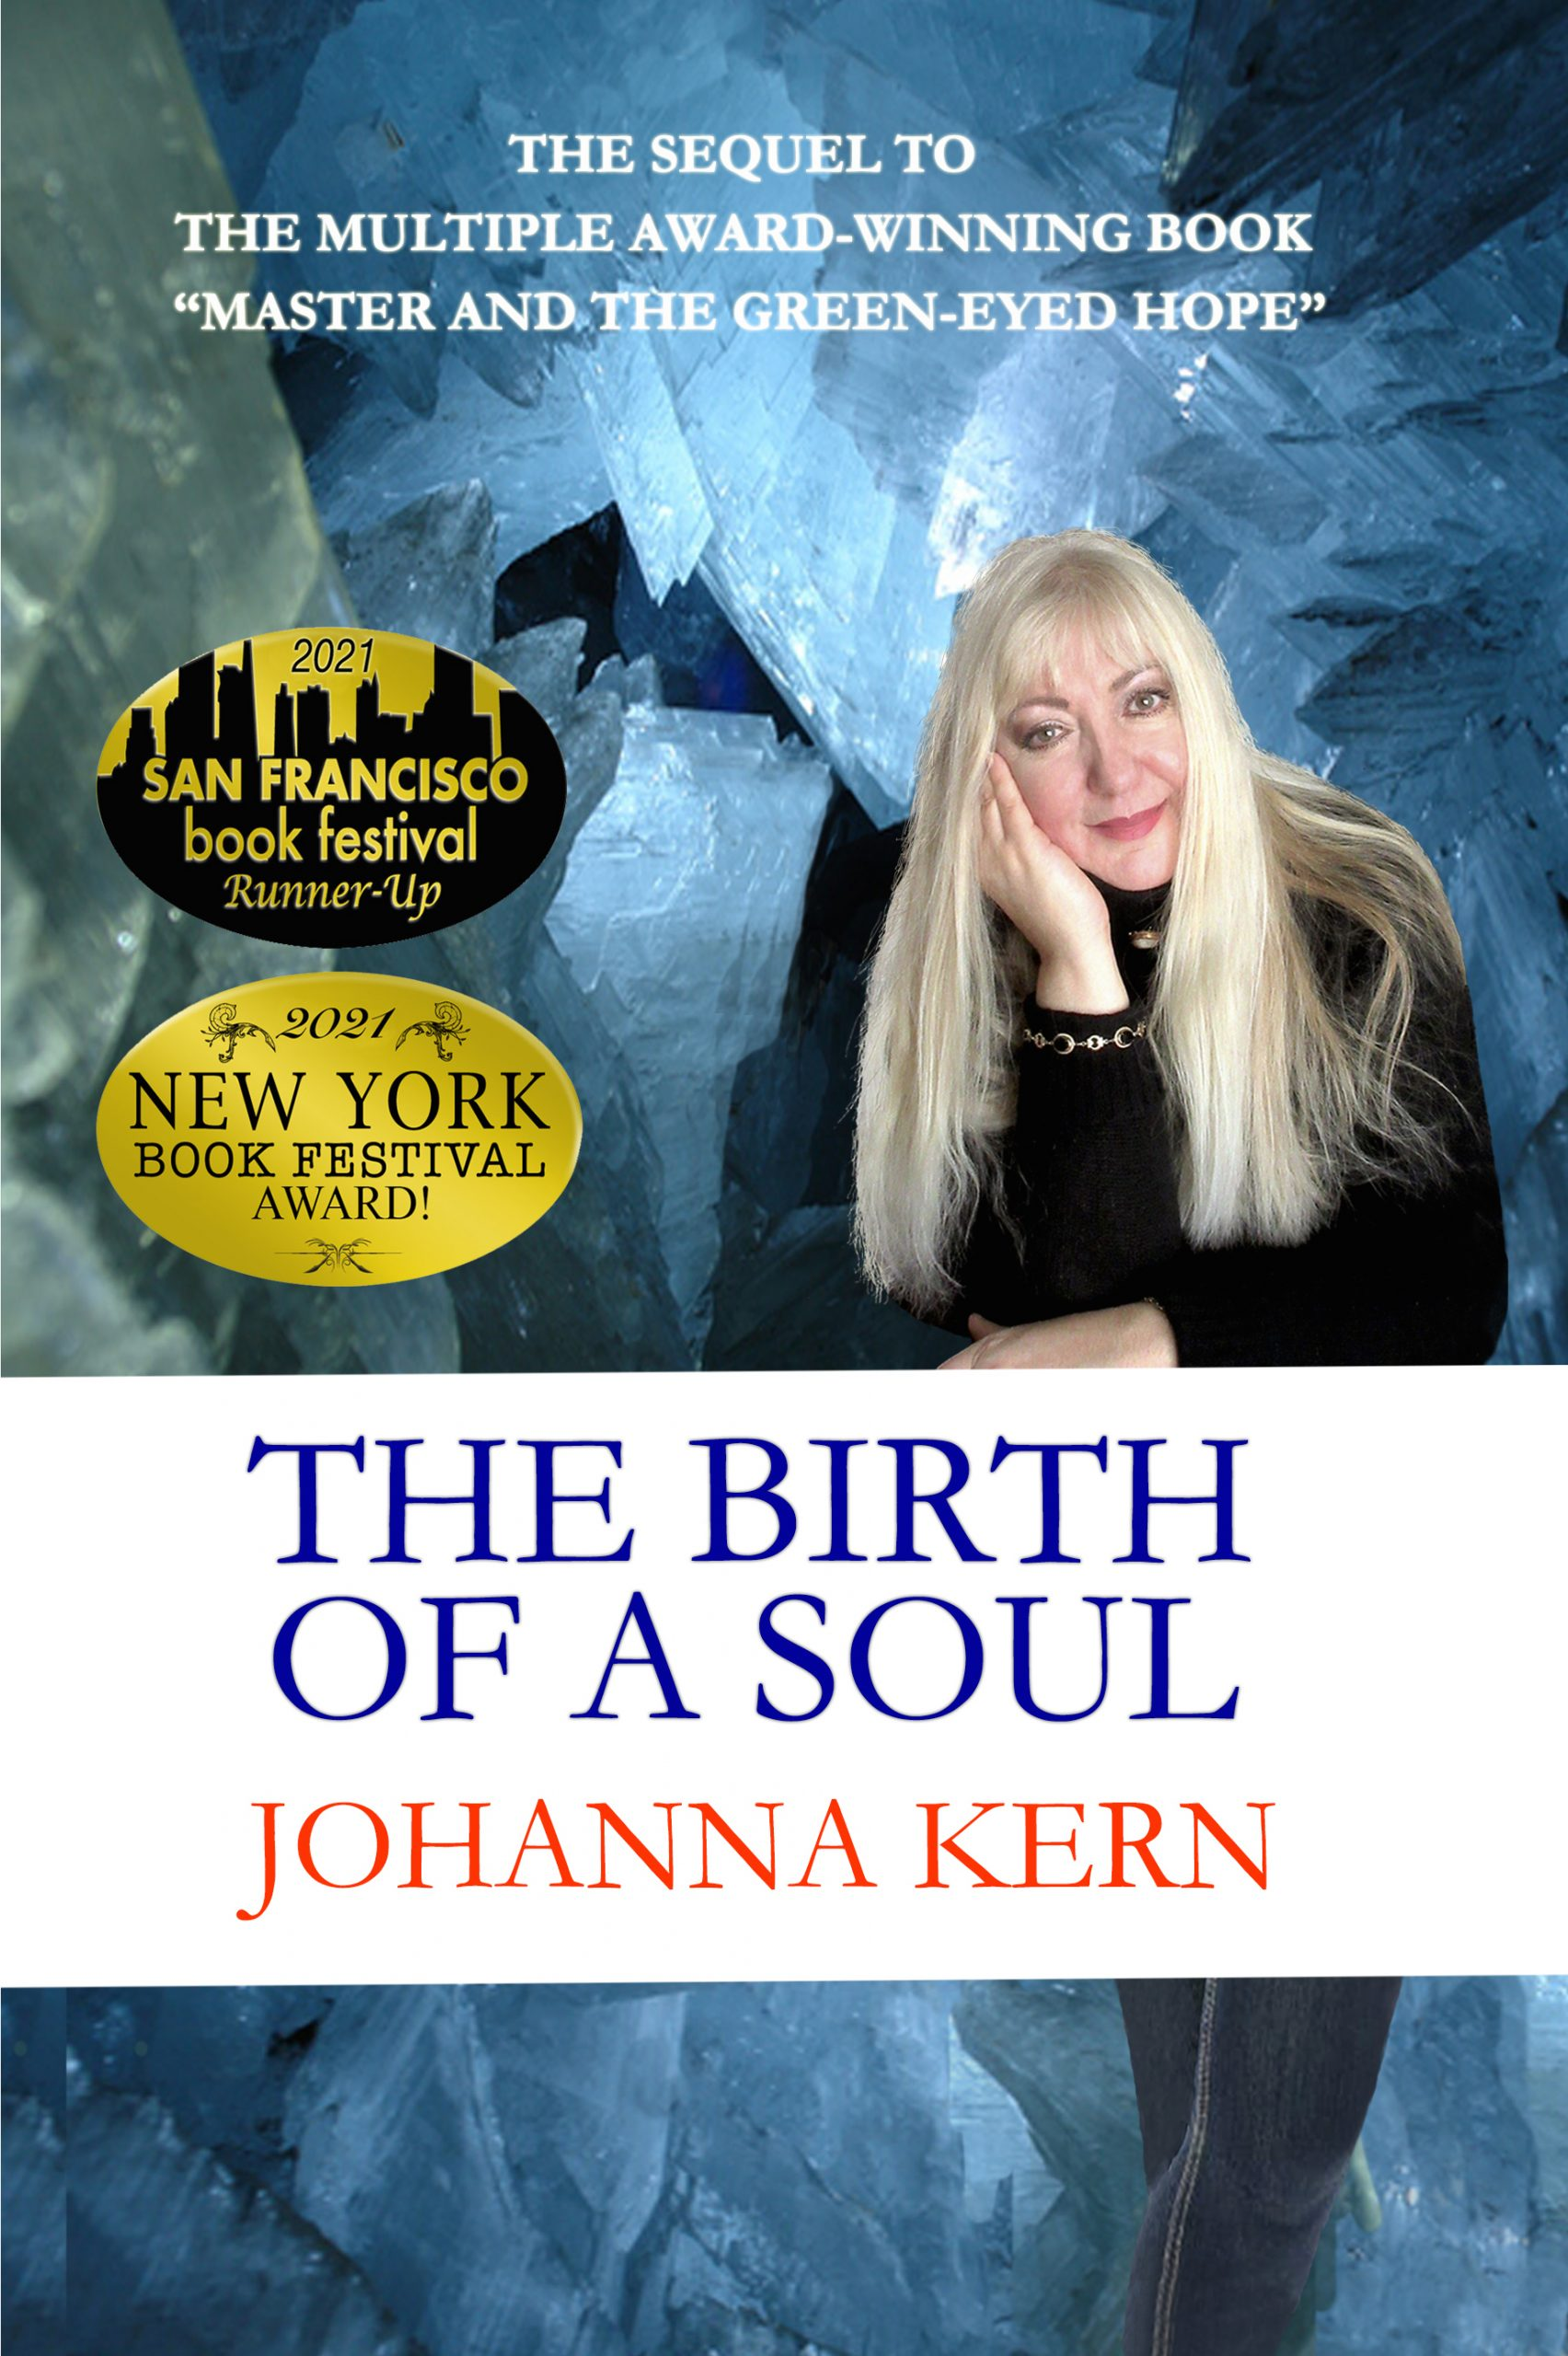 The Birth of a Soul